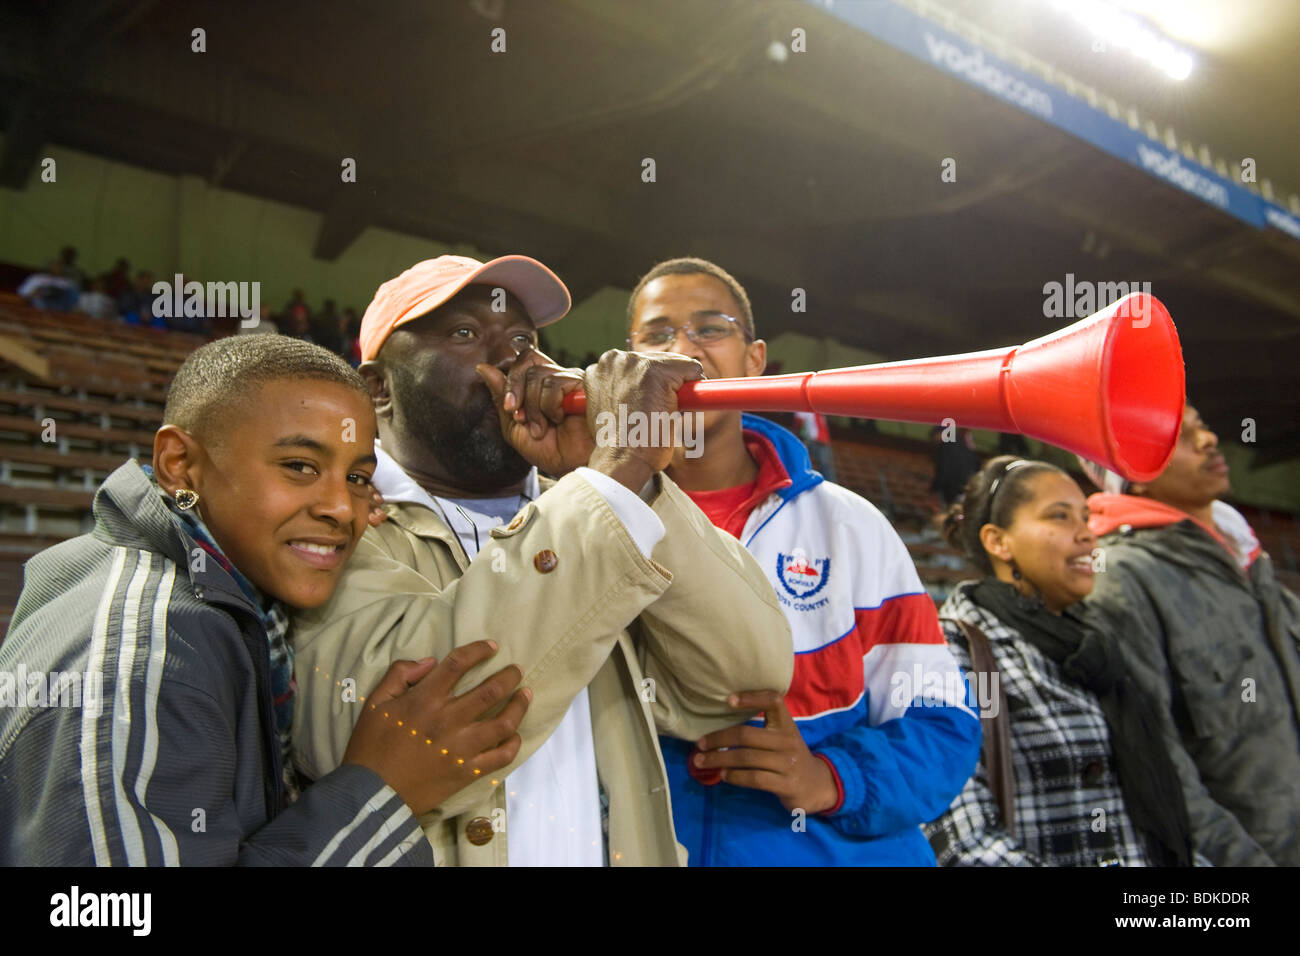 SOCCER FAN WITH VUVZELA, NEWLANDS STADIUM, CAPE TOWN, SOUTH AFRICA - Stock Image